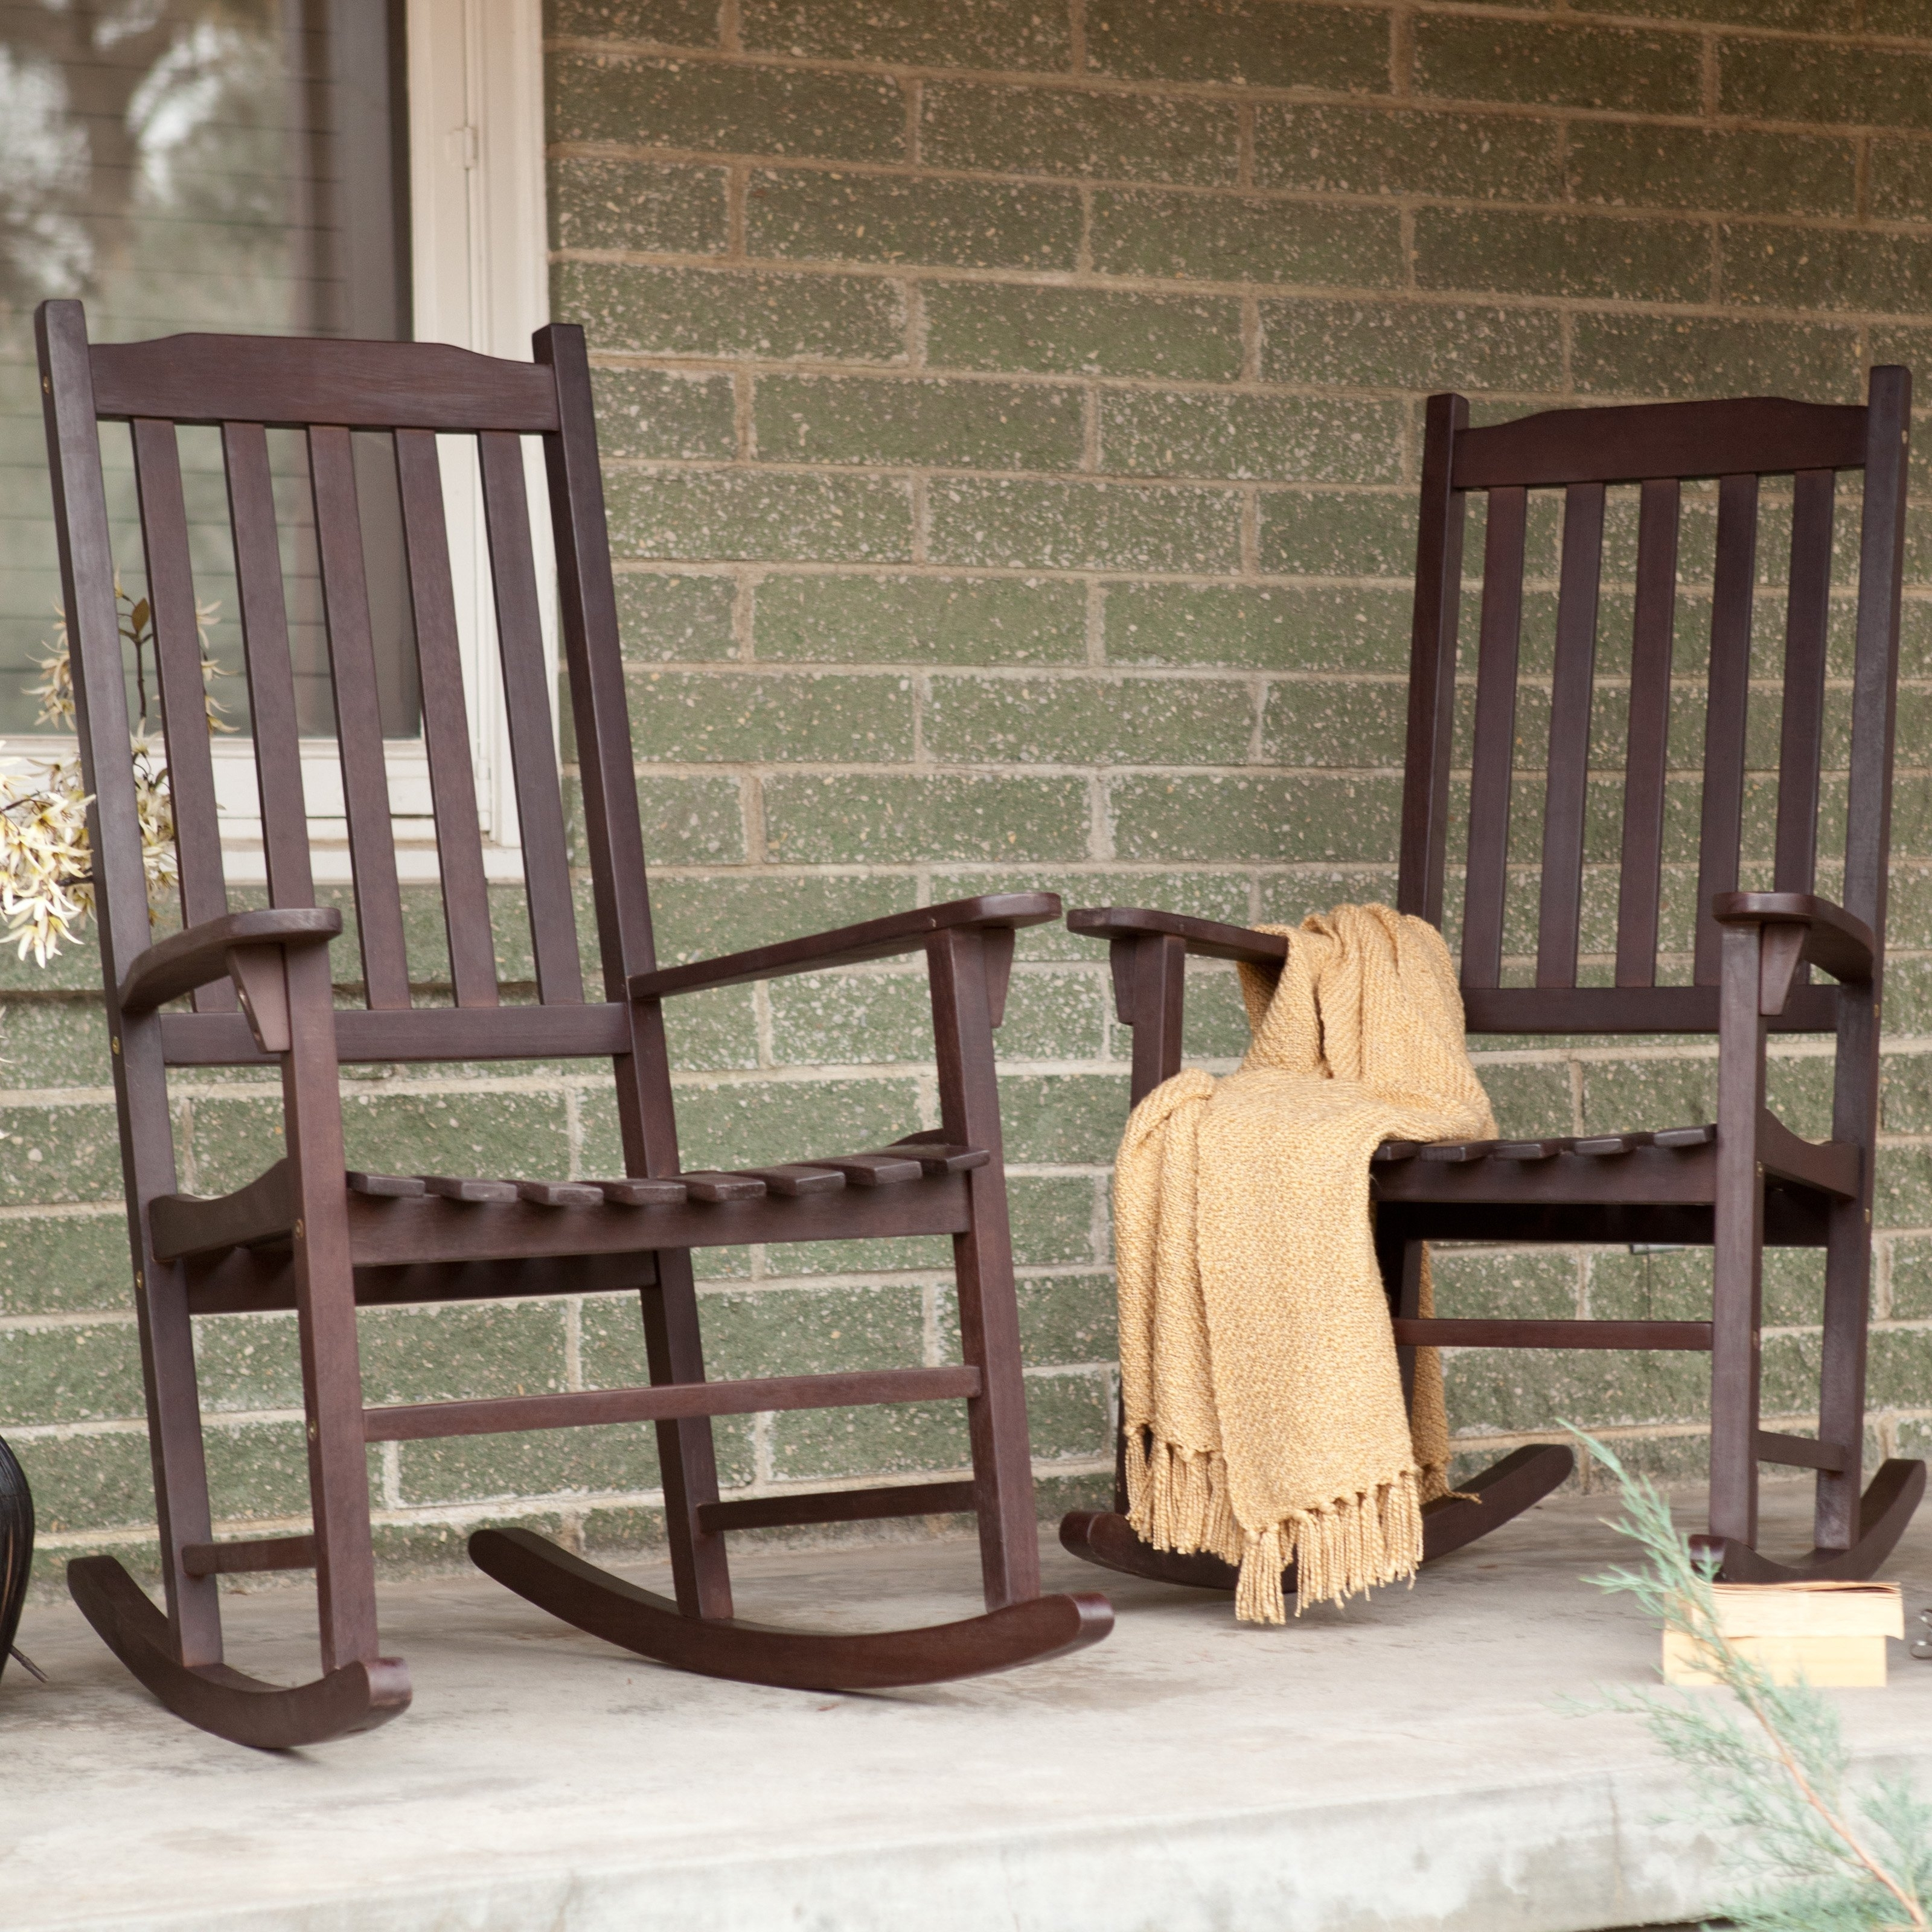 Favorite A Guide To Find The Right Outdoor Rocking Chair For Your House Throughout Outdoor Patio Rocking Chairs (View 10 of 15)